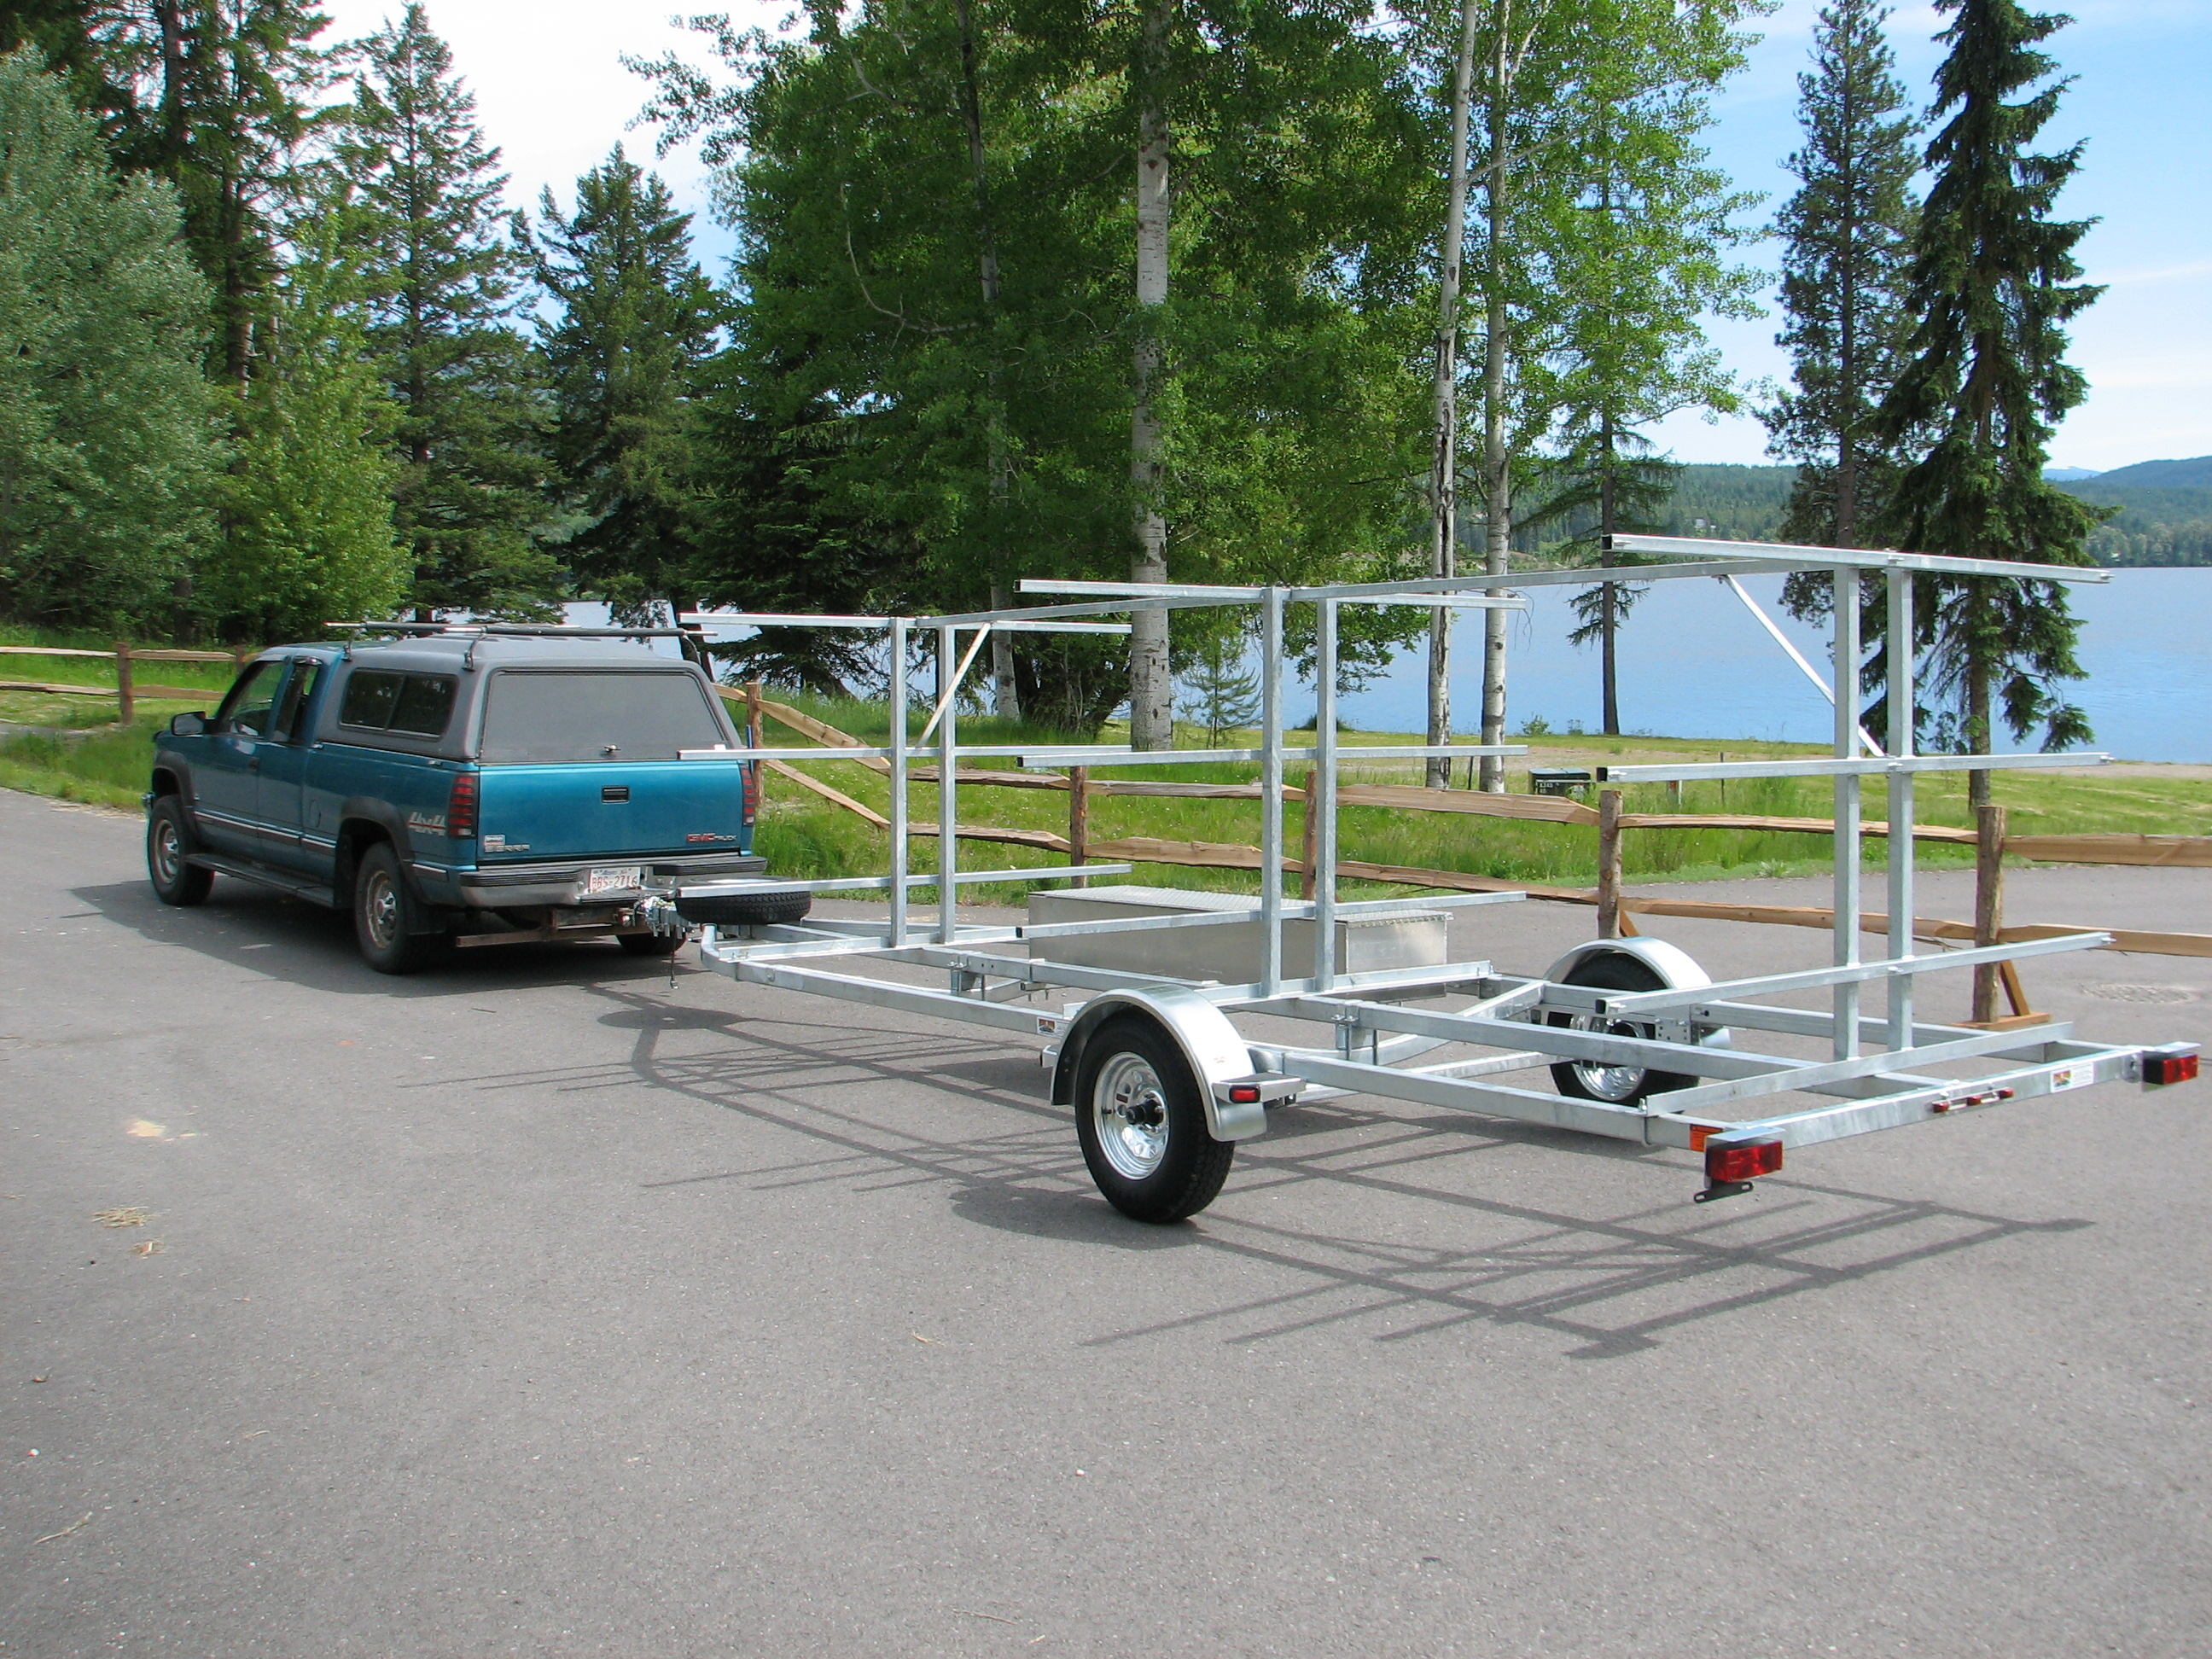 Transport, Storage & Launching: 12-24 Canoes, Kayaks,Outrigger, Big Canoes, Gear Storage, Bikes by North Woods Sport Trailers - Image 4025